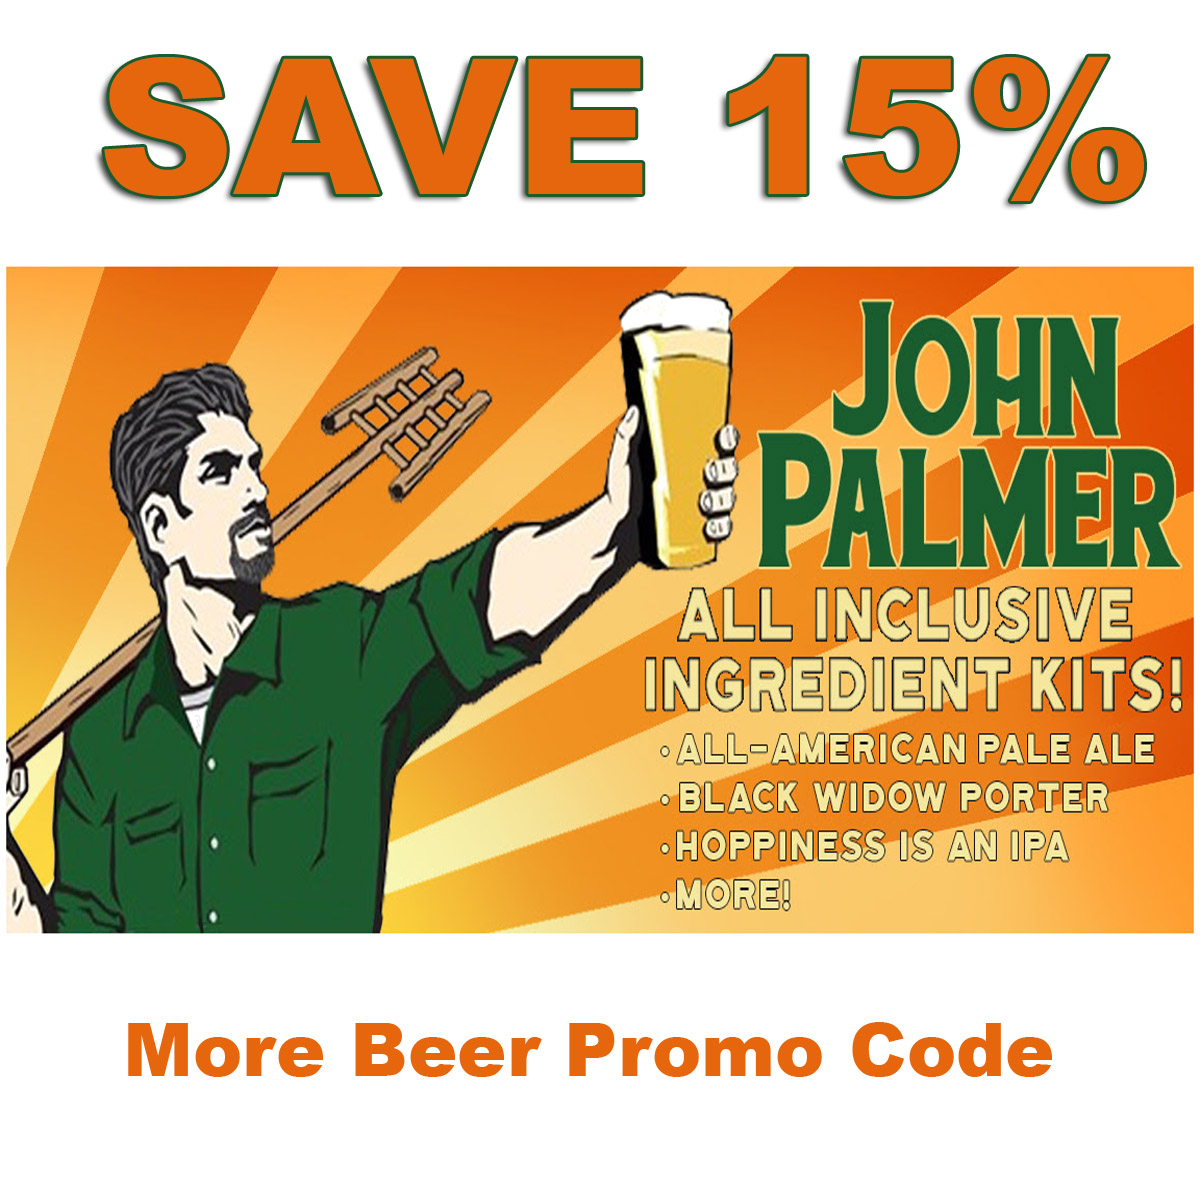 Home Brewer Promo Code for Save 15% On All John Palmer Home Brewing Beer Kits Coupon Code